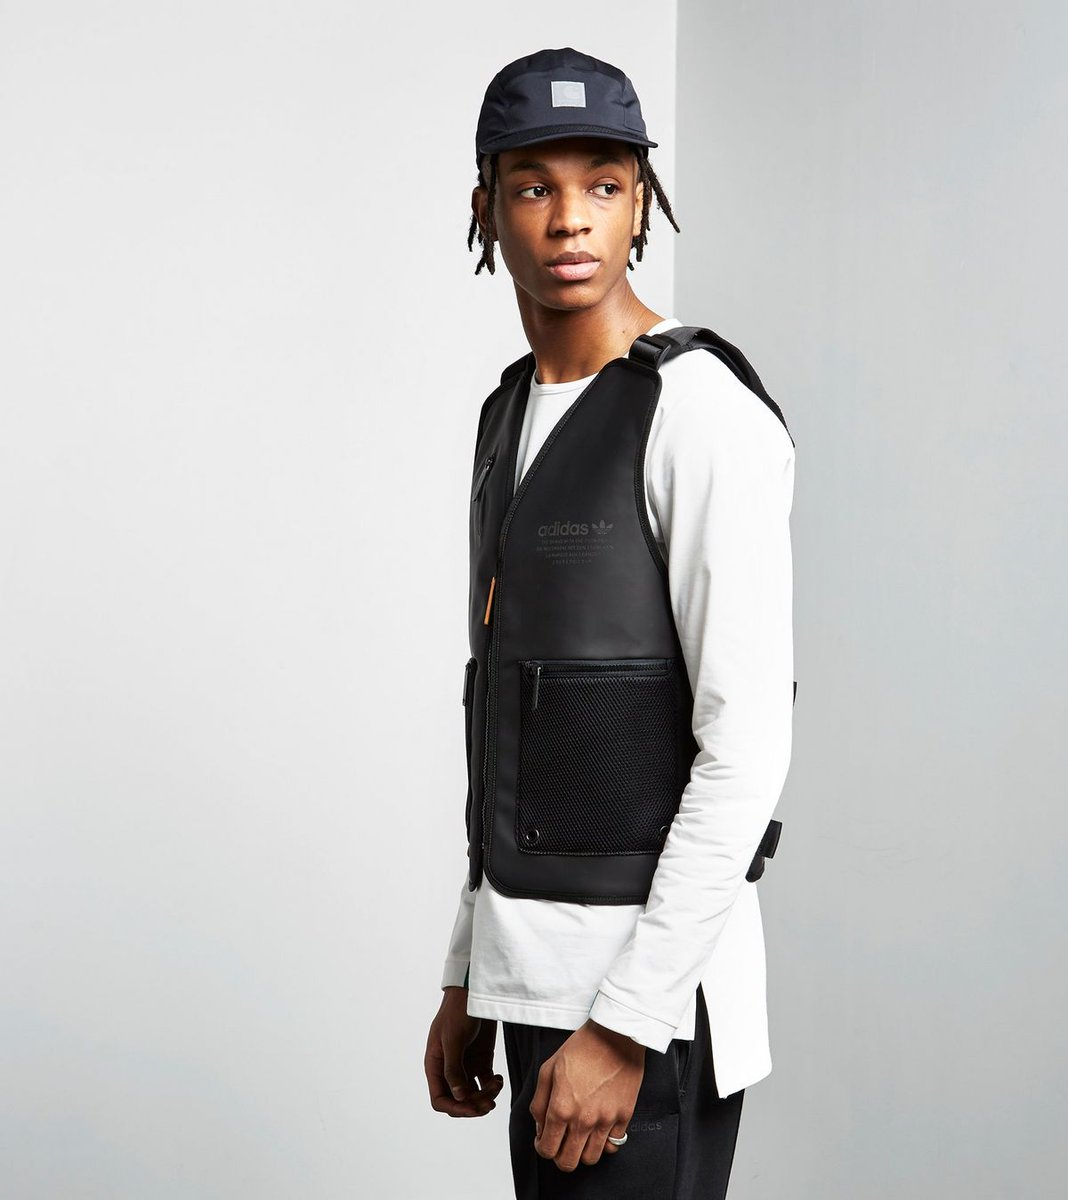 """Just know, when I come through with this adidas NMD """"bulletproof"""" vest, I'm ready for whatever, B. https://t.co/Fy3v7MAcio"""